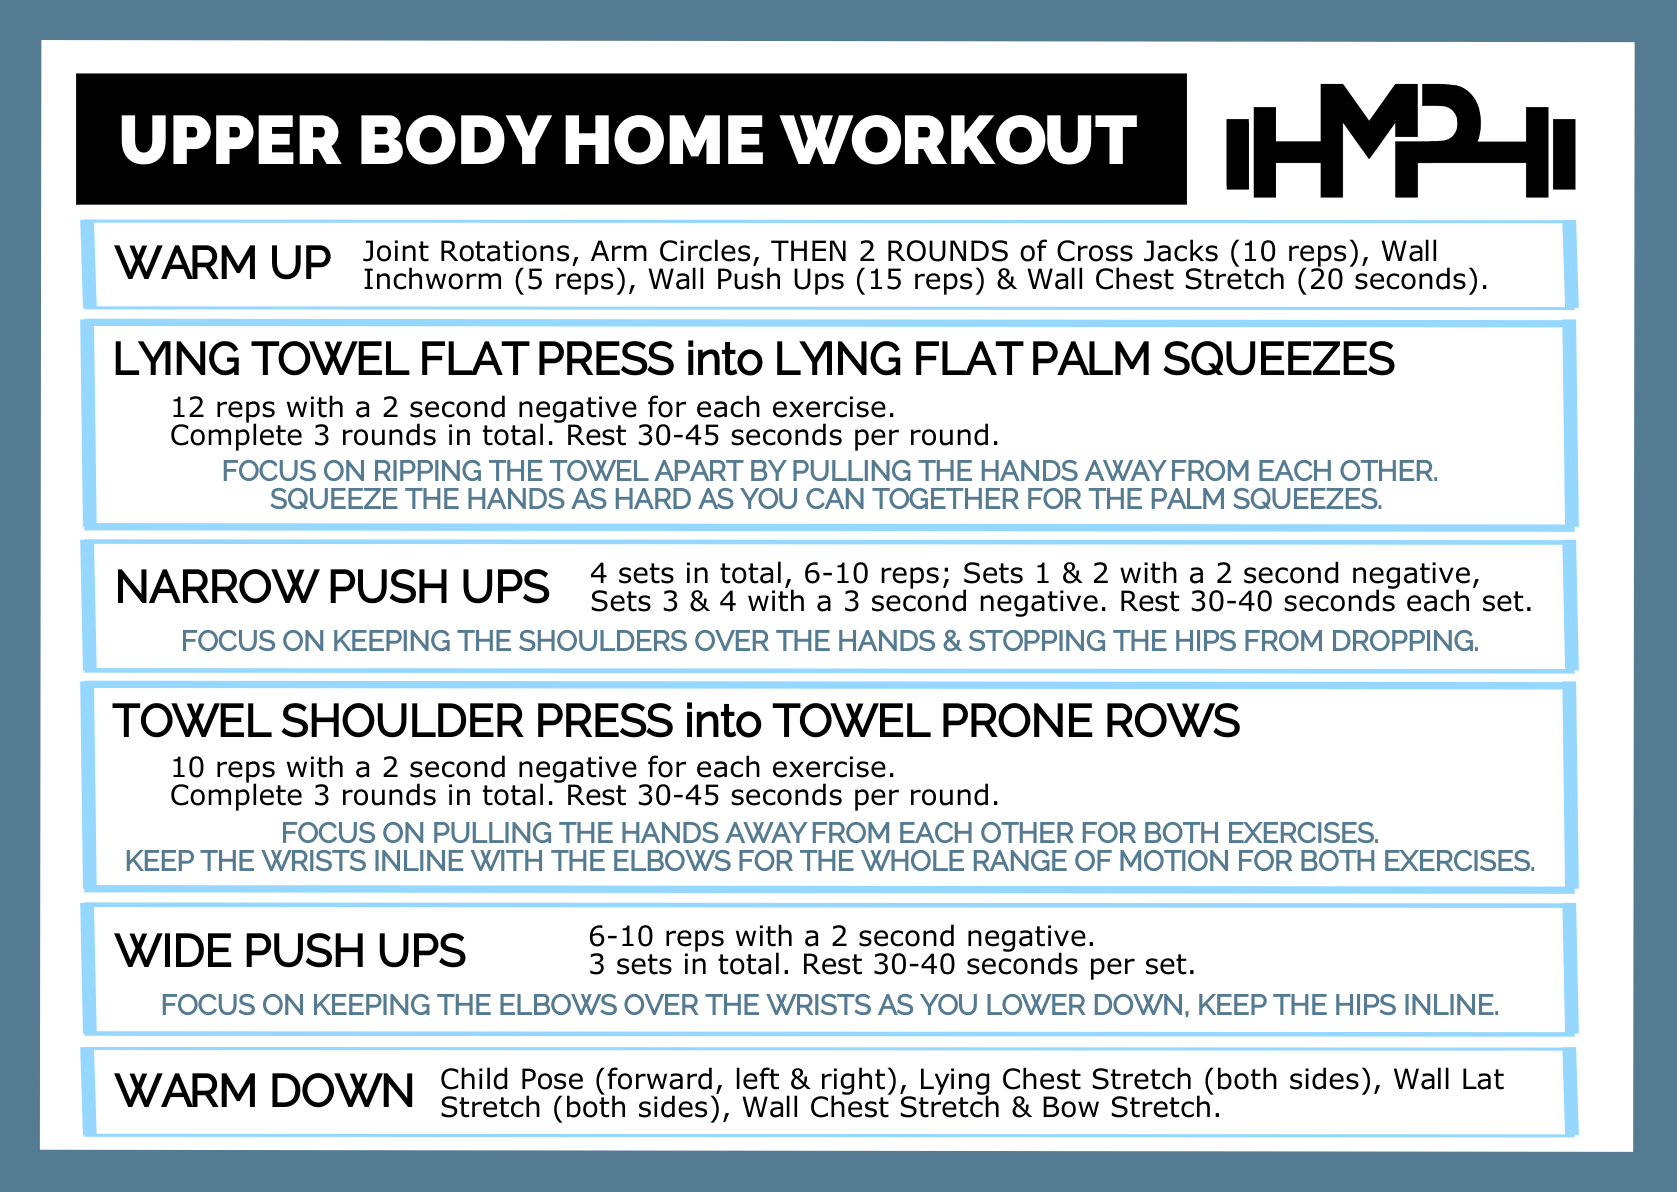 Upper Body Home Workout.png